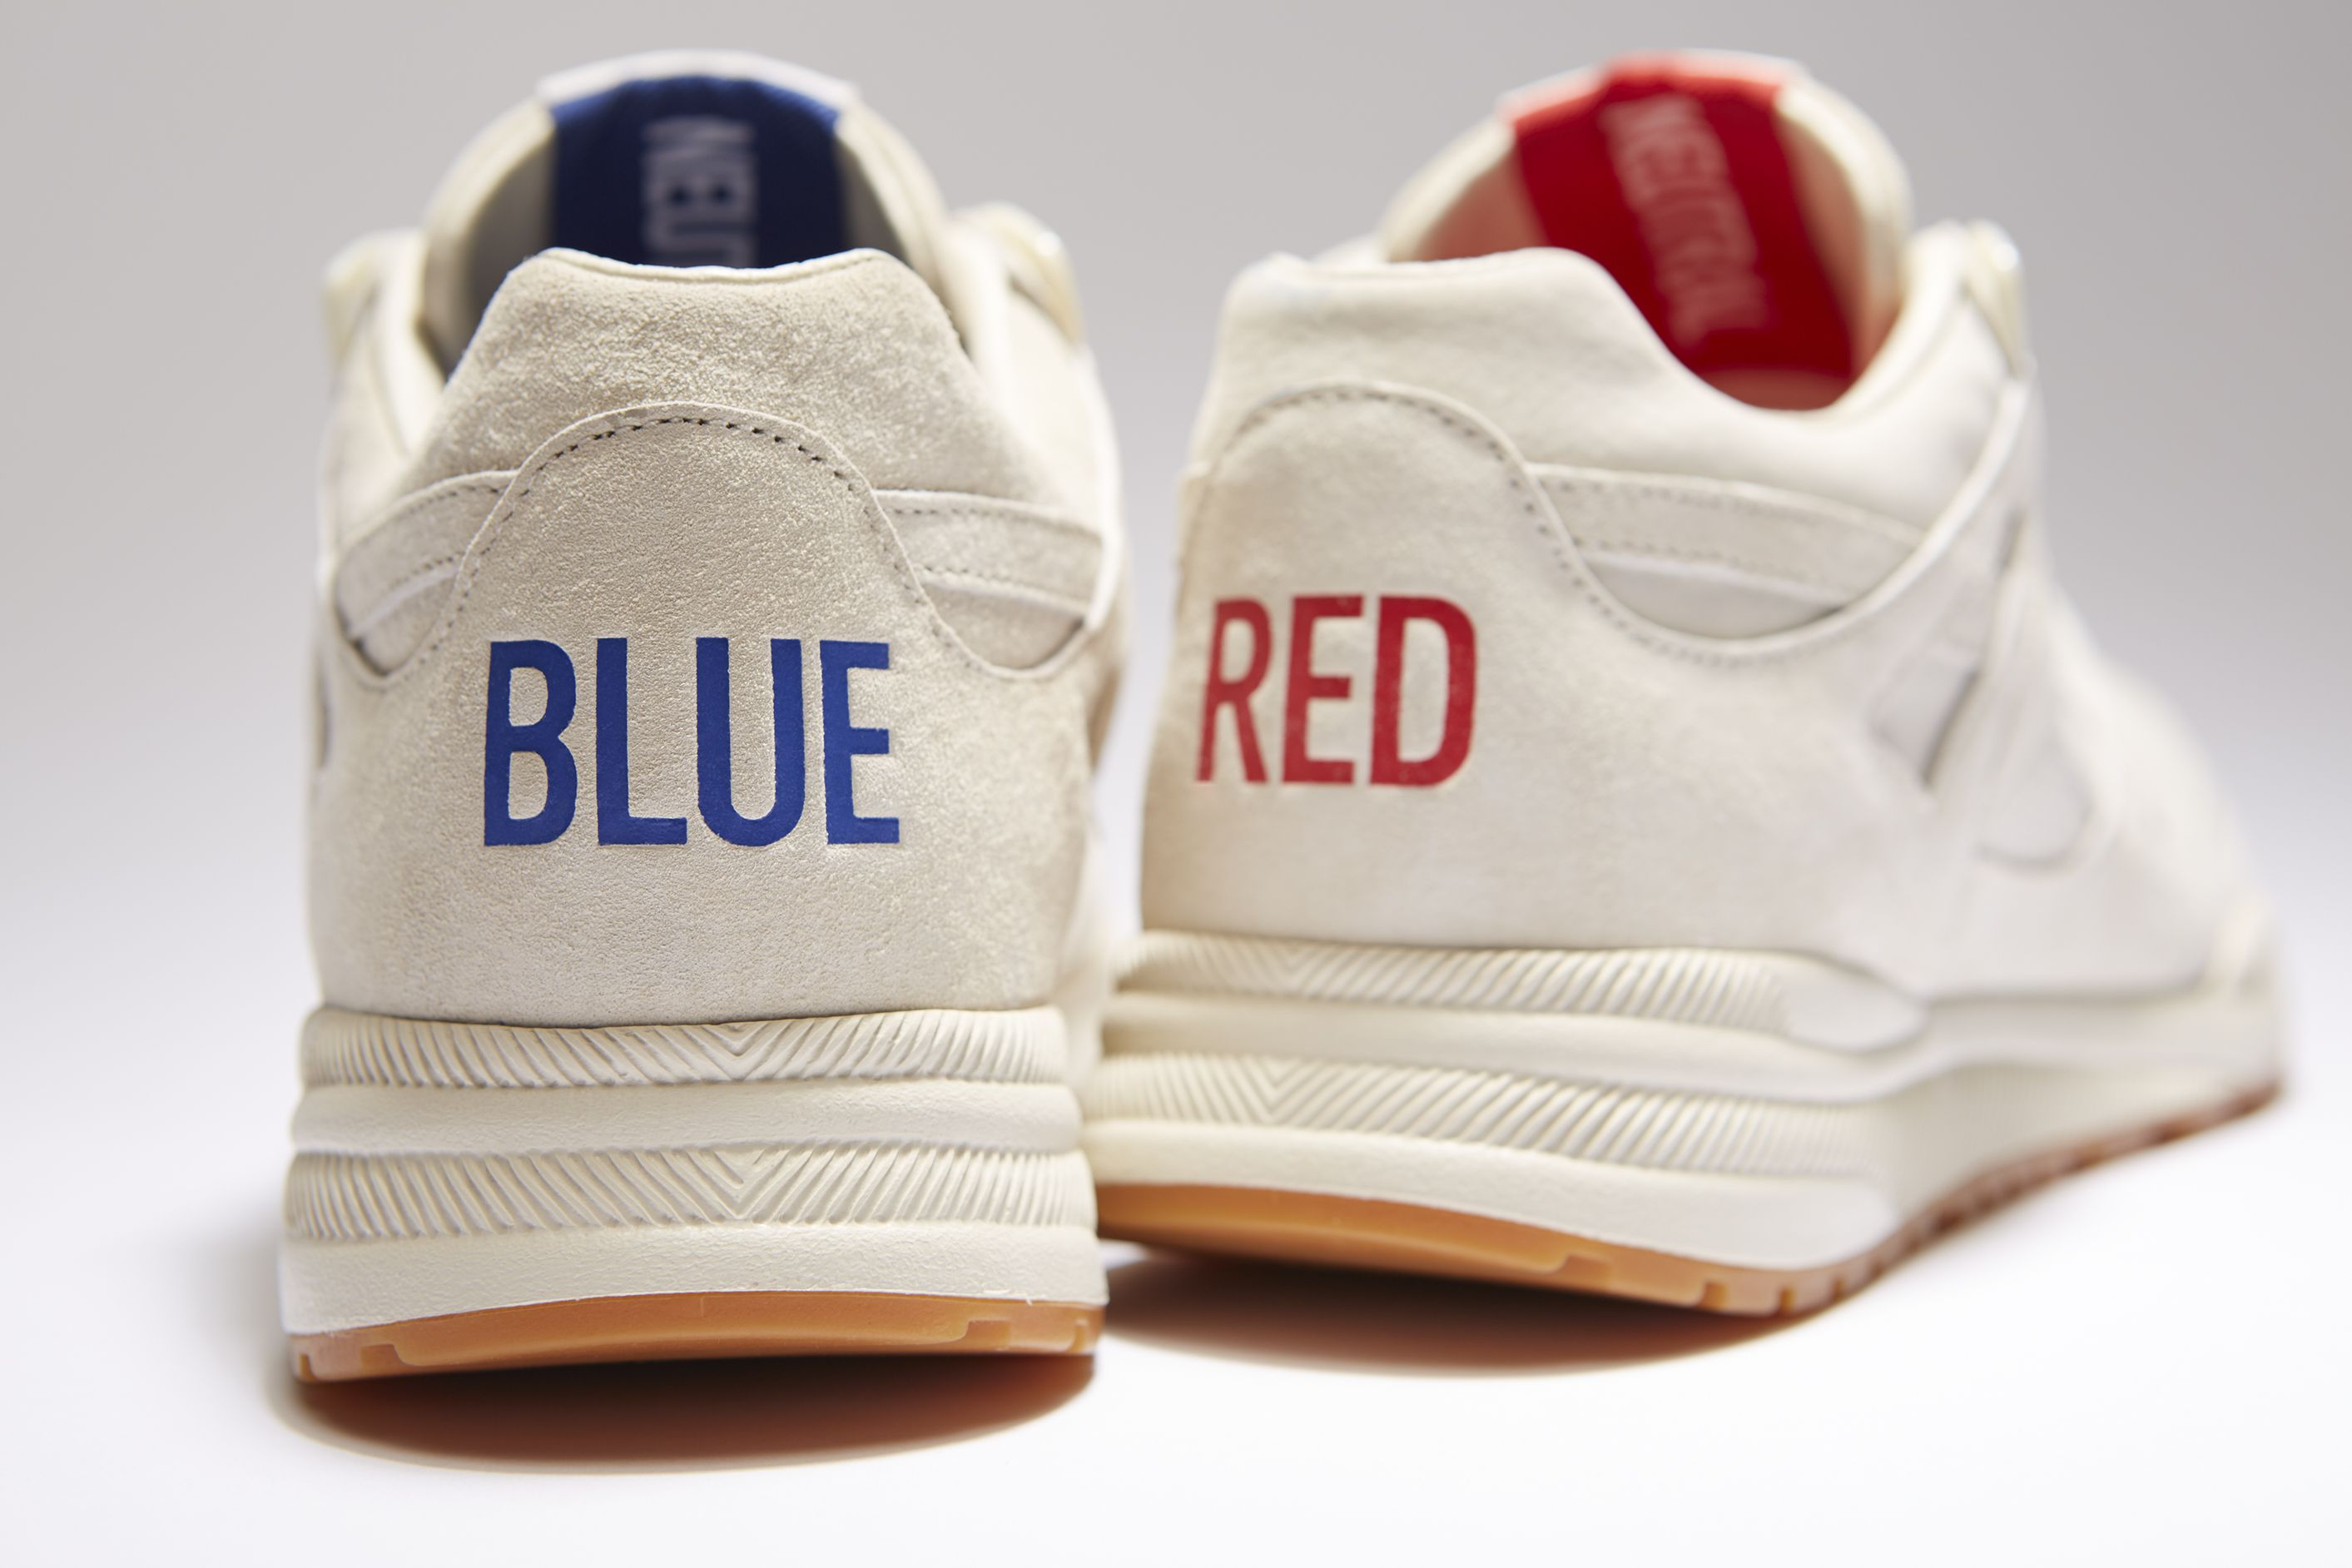 Top Sell - Reebok Kendrick Lamar Limited Edition